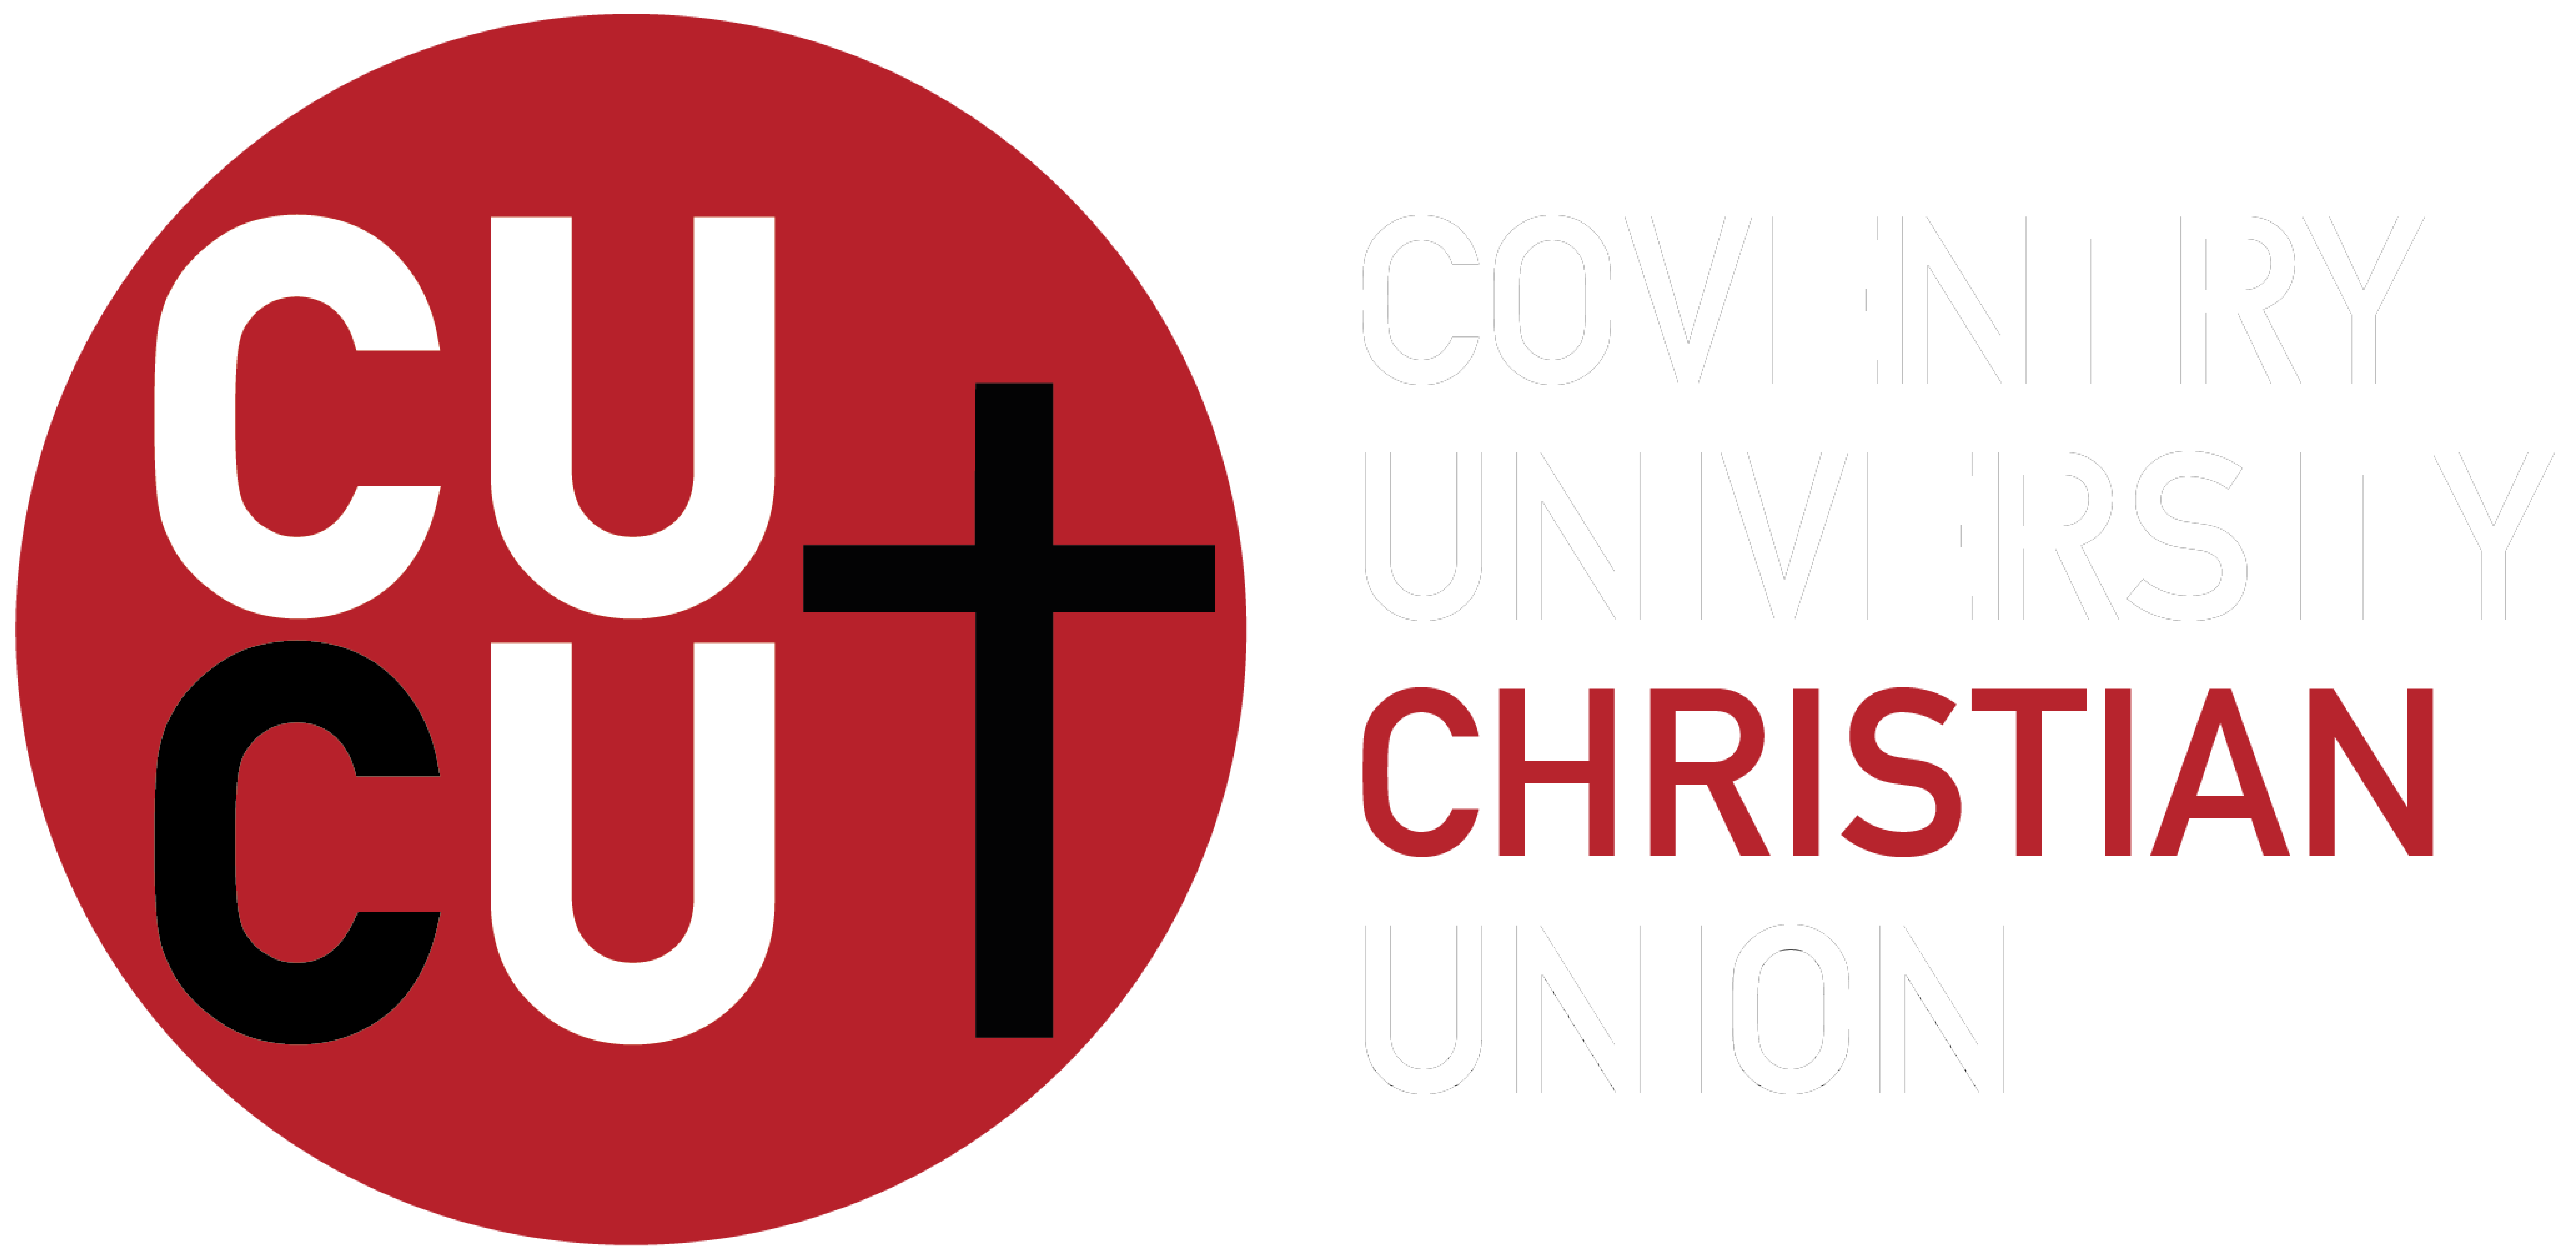 Coventry University Christian Union